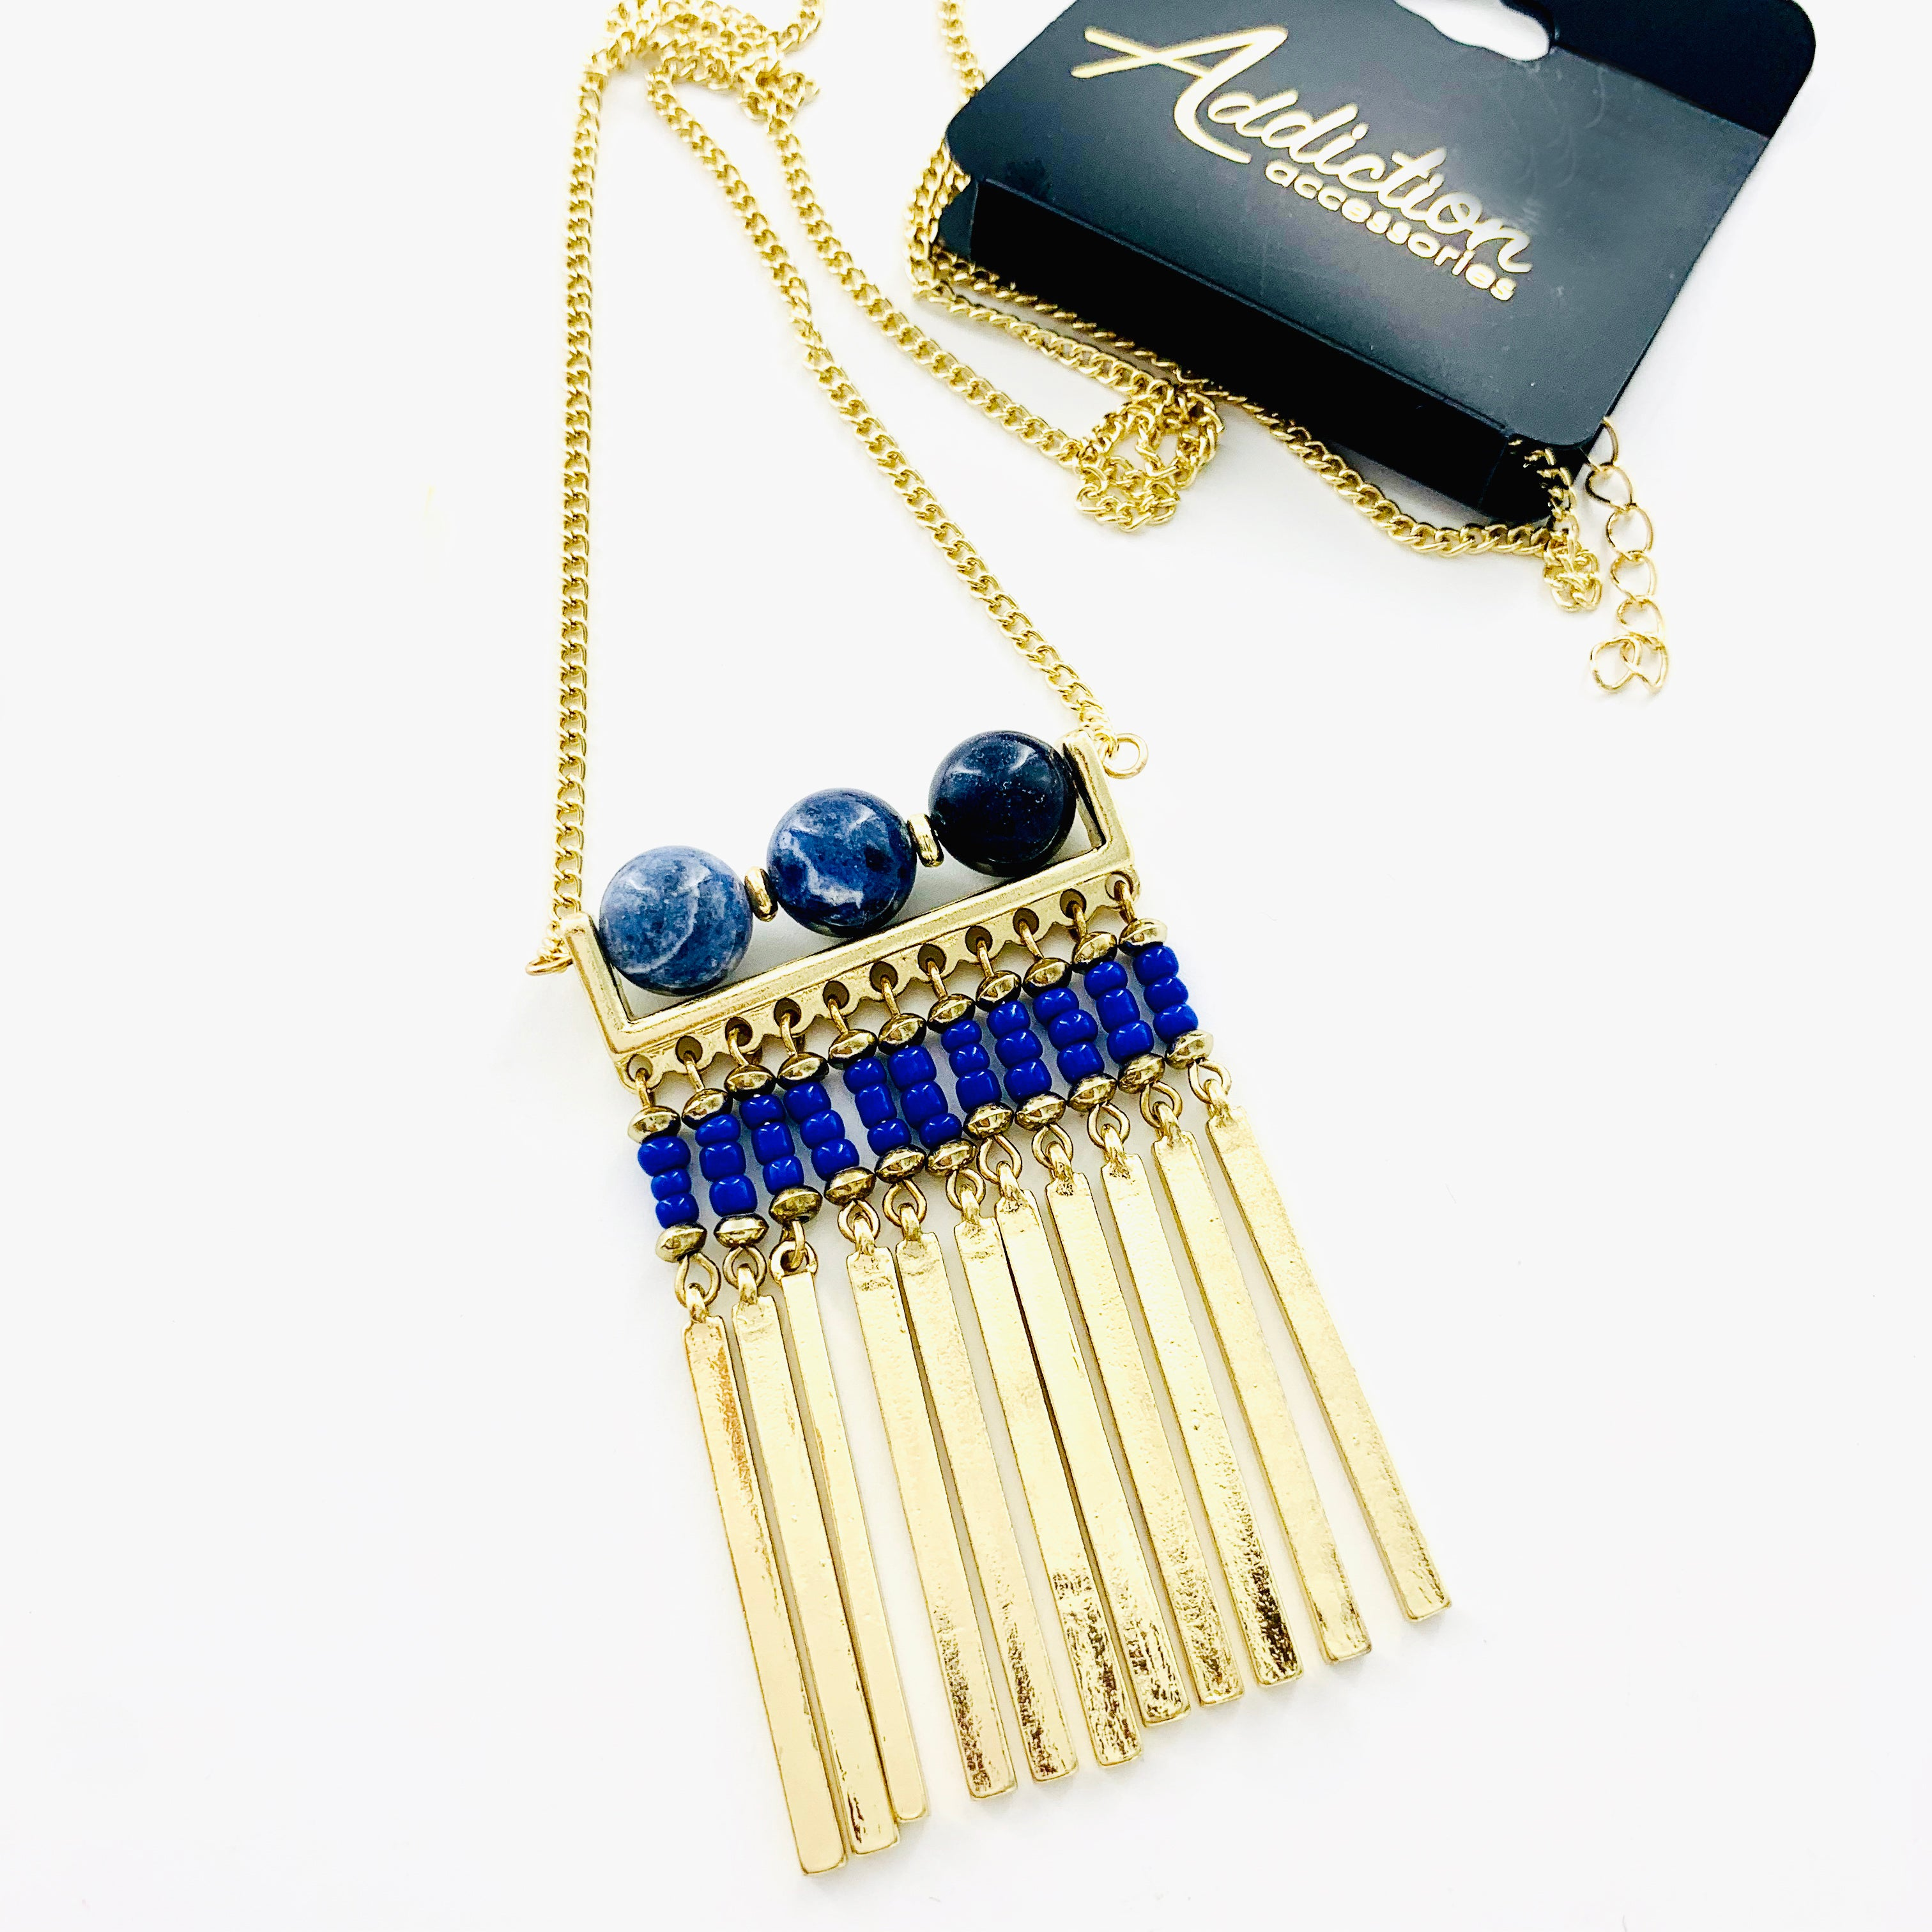 Necklace - Blue Bead and Gold Pendant on Gold Chain